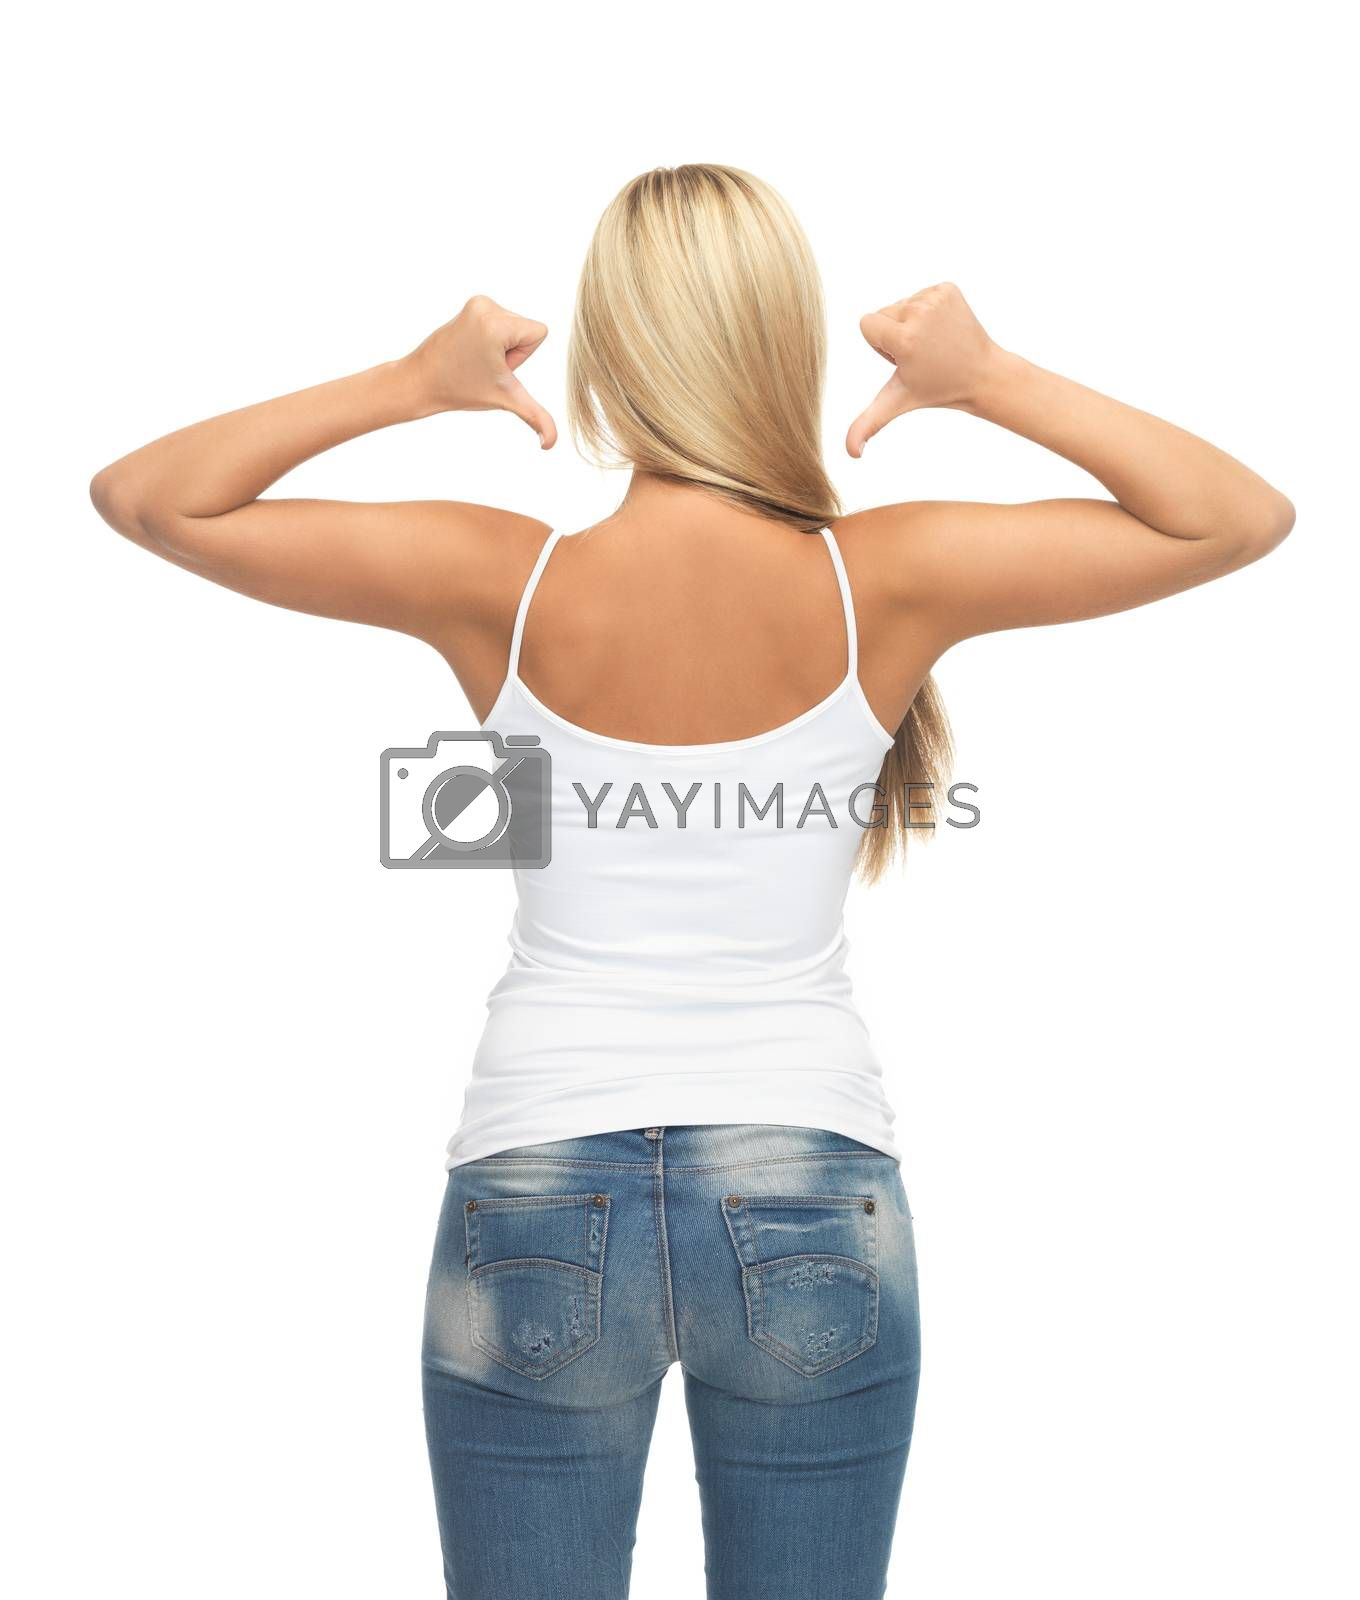 woman in blank white t-shirt showing back by dolgachov